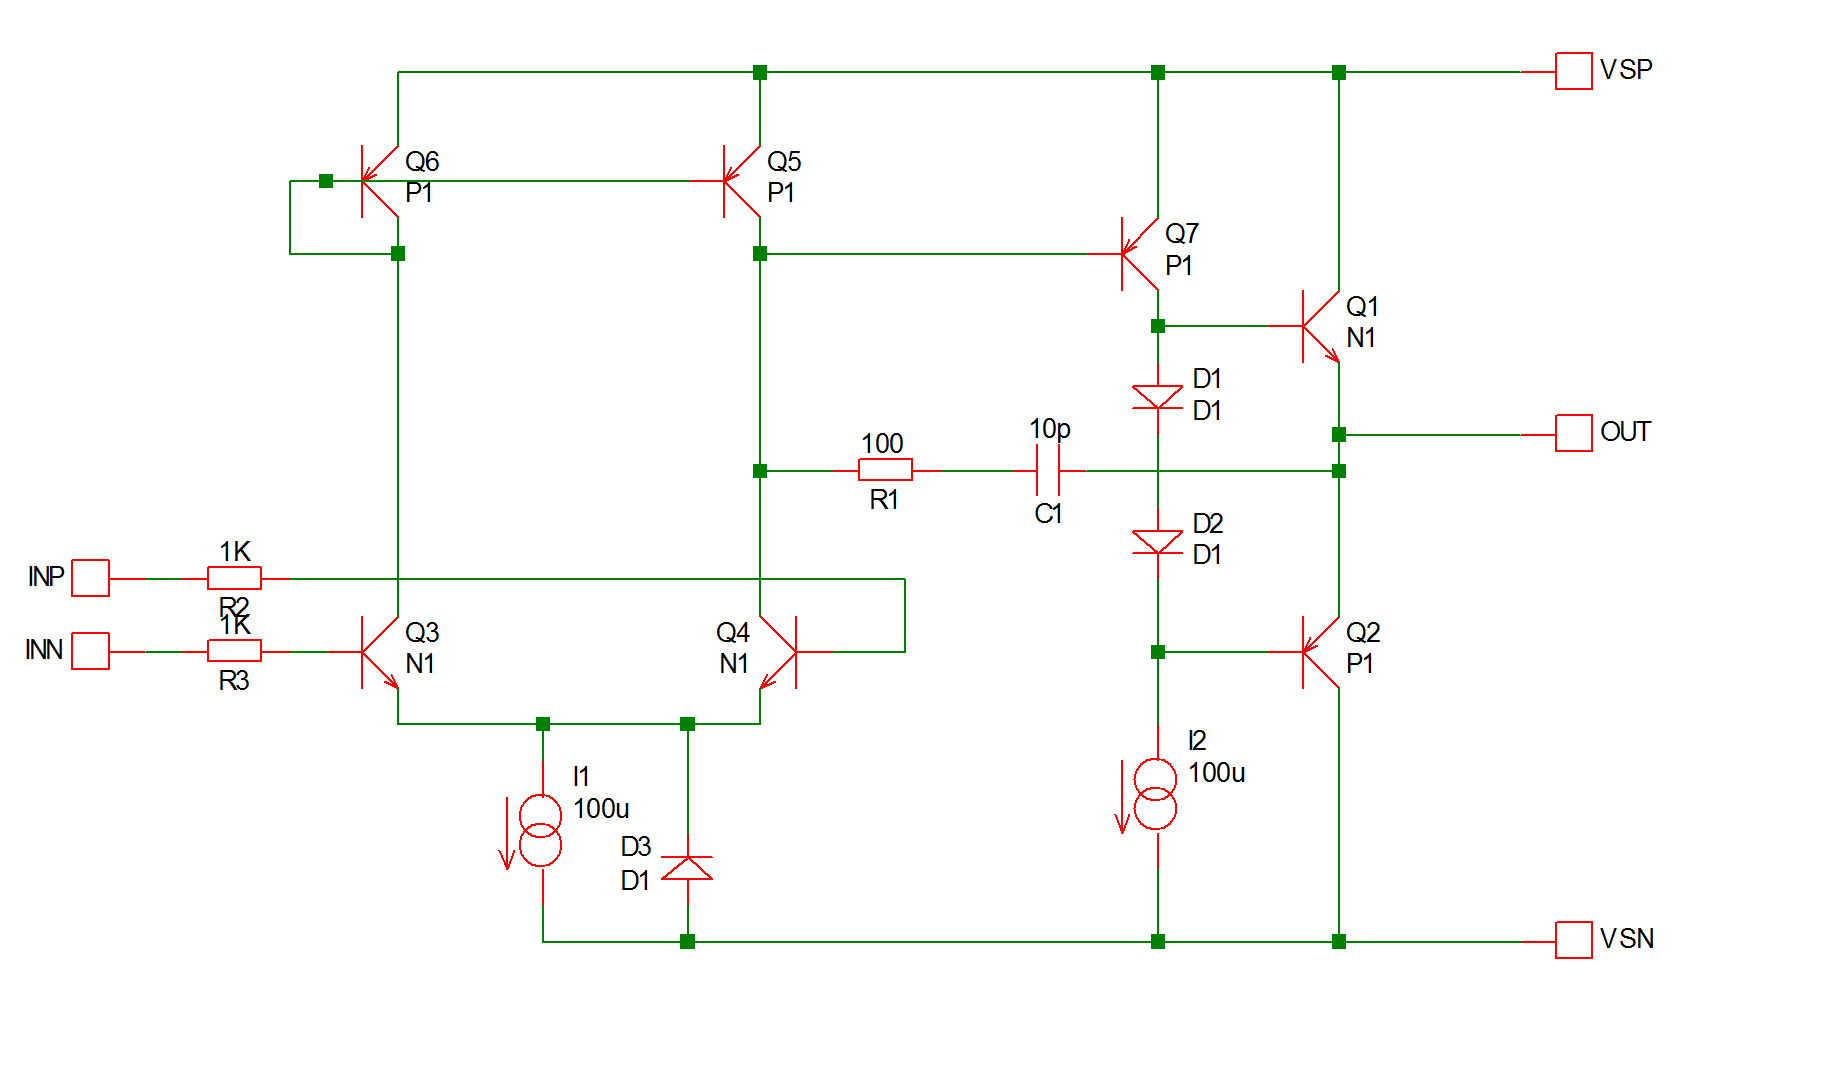 User Manual Subcircuits Block Diagram Of N1 Multiplexer This Is Circuit A Simple Op Amp In Fact It The Our Fictitious Sxoa1000 Used Tutorial 3